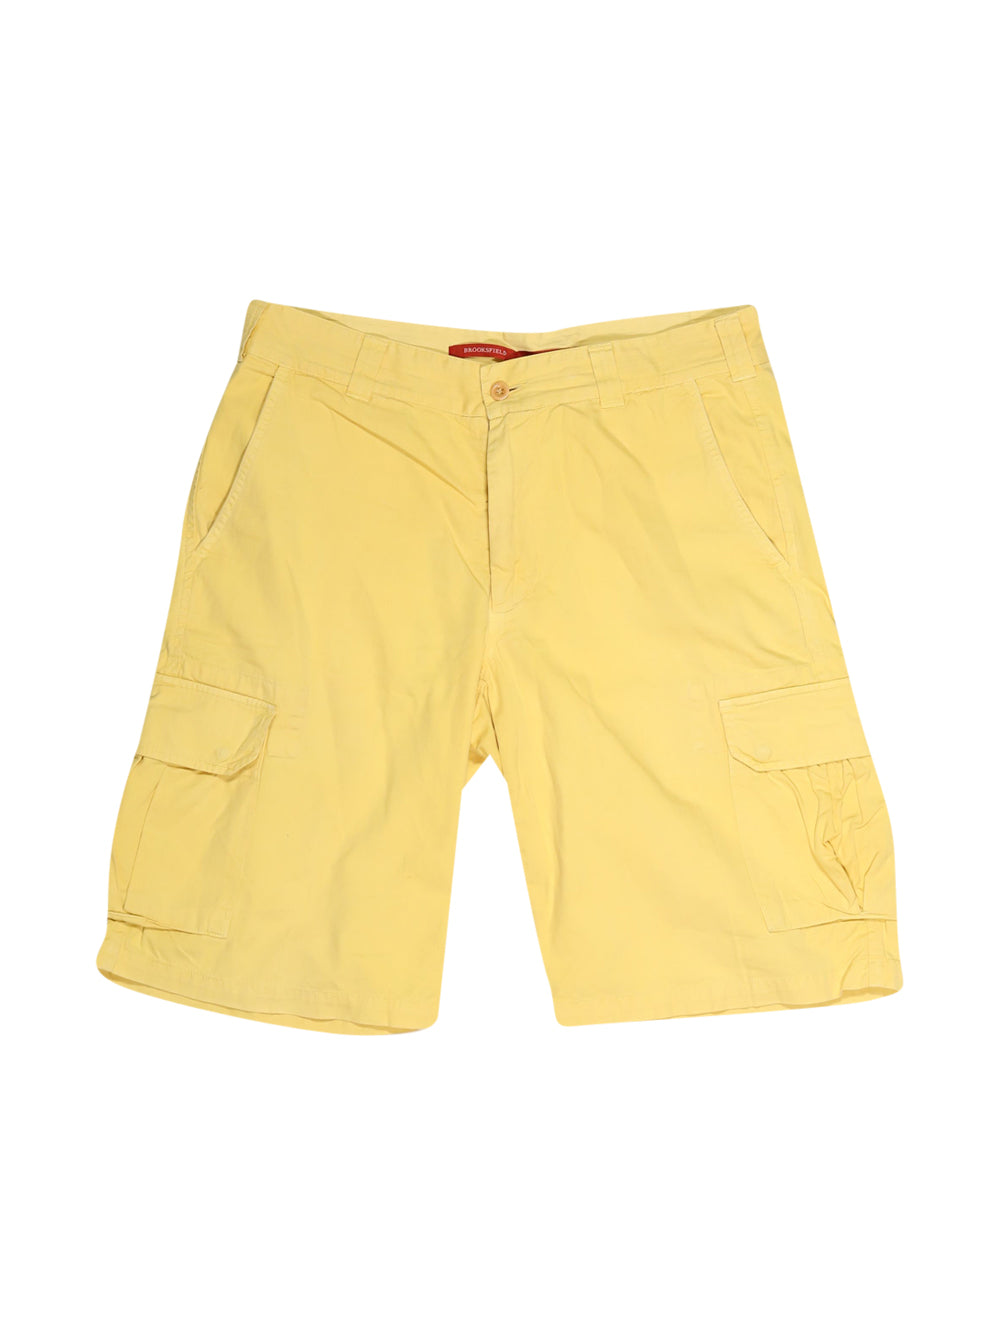 Front photo of Preloved Brooksfield Yellow Man's shorts - size 40/L